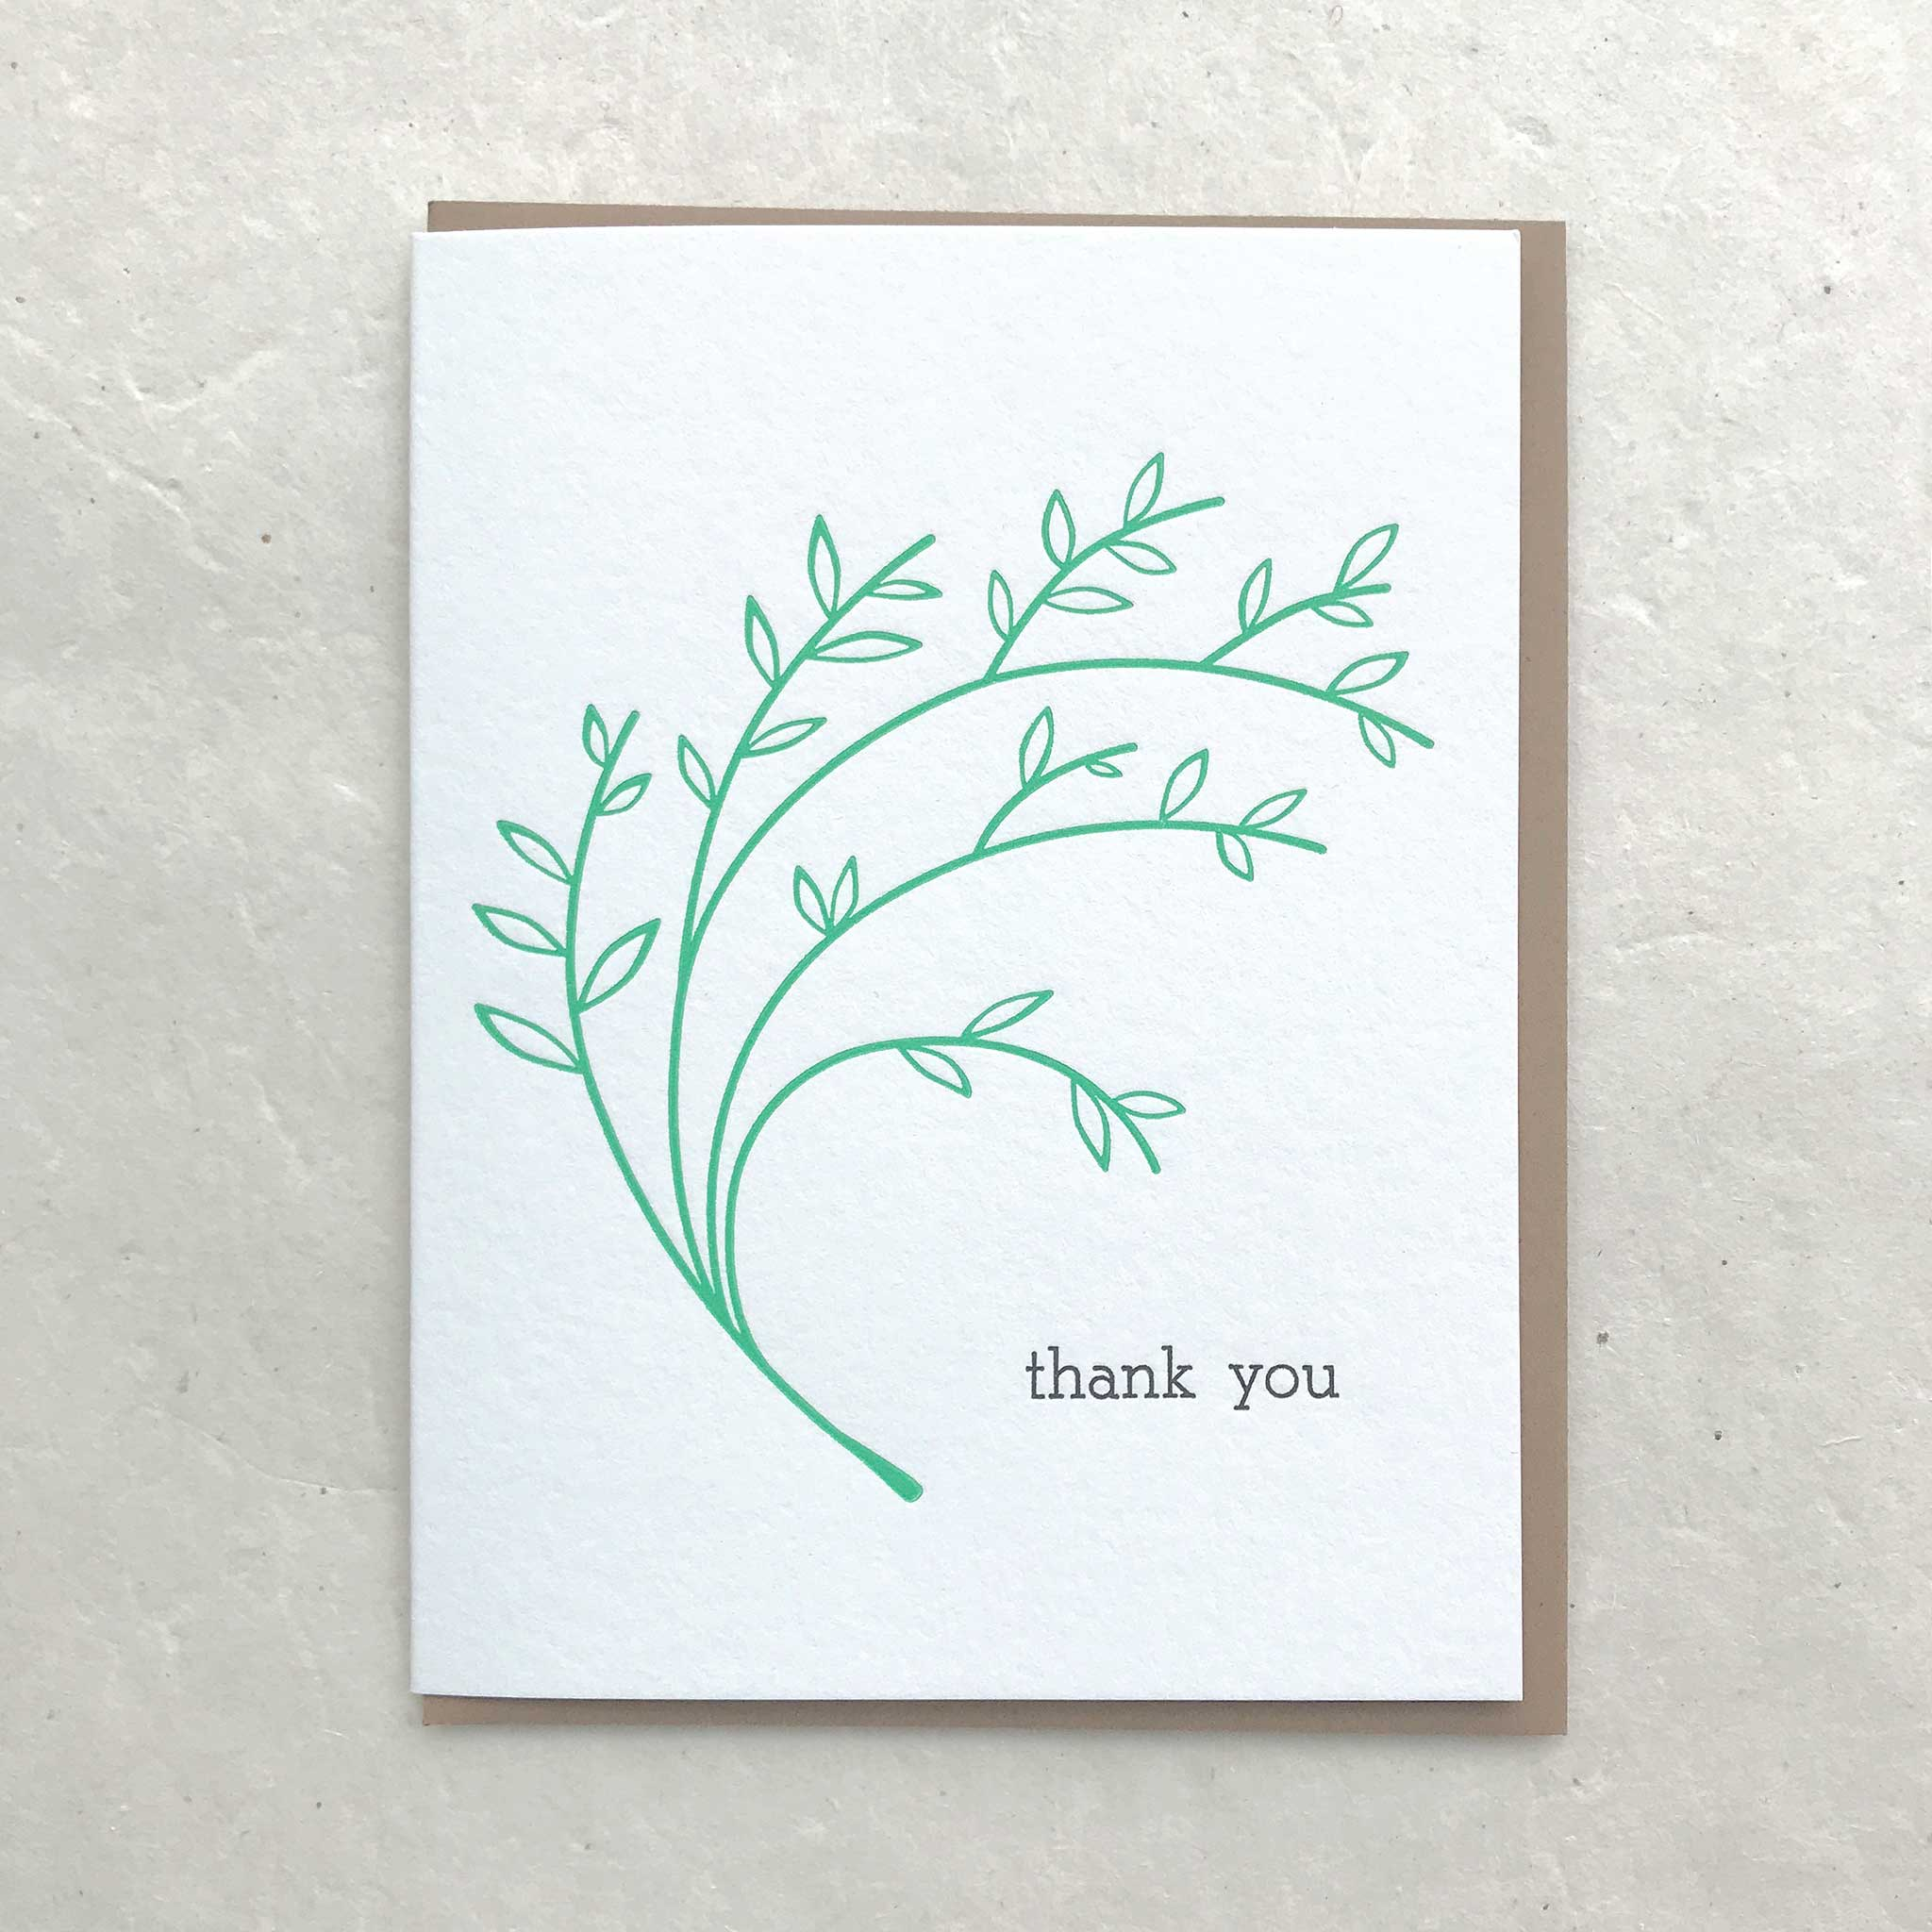 Thank You - Kelly Green Branch